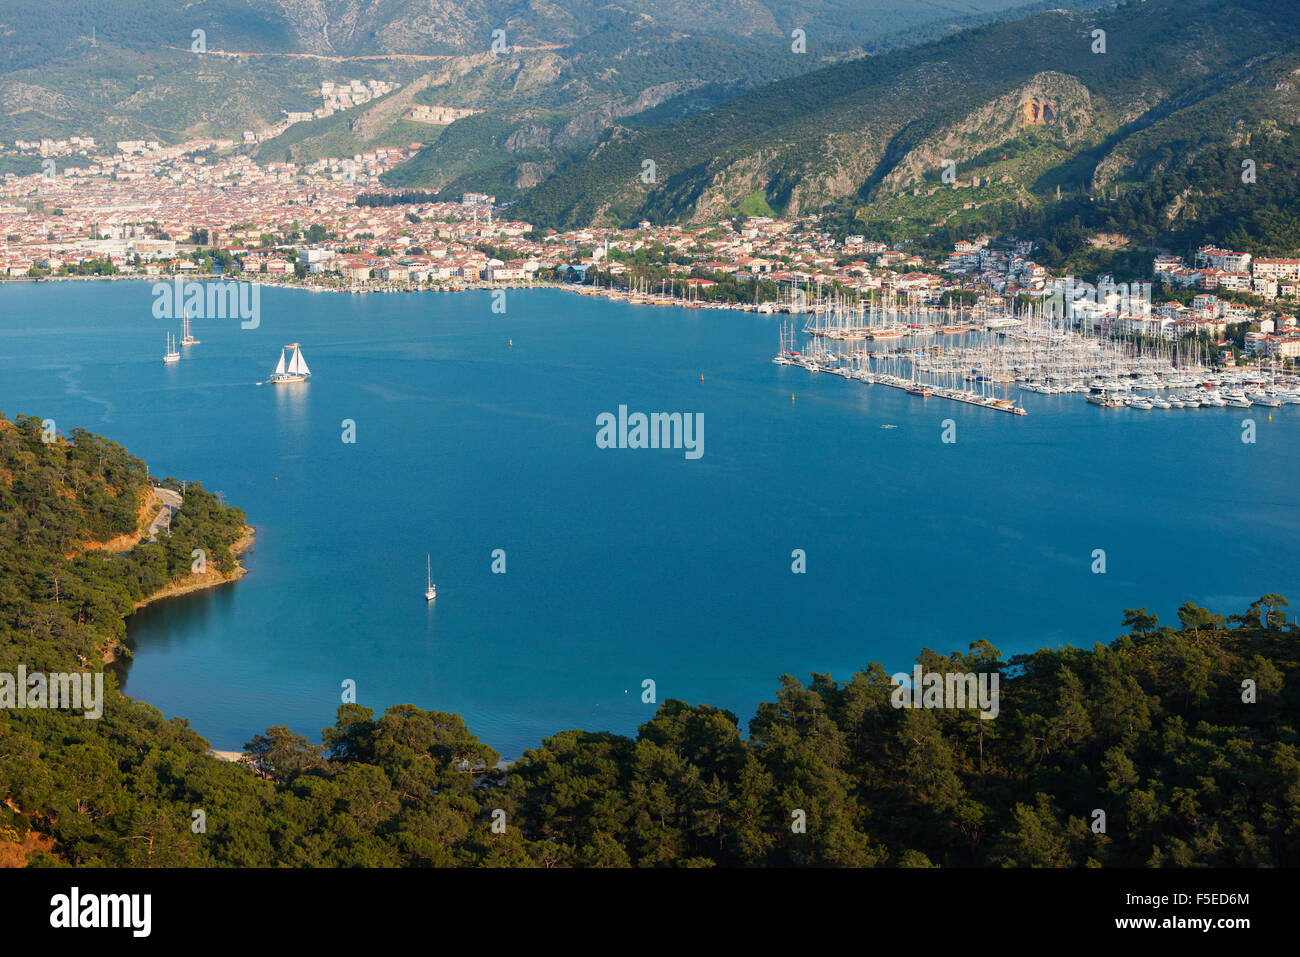 Boats in harbour, Fethiye, Aegean Turquoise coast, Mediterranean region, Anatolia, Turkey, Asia Minor, Eurasia - Stock Image